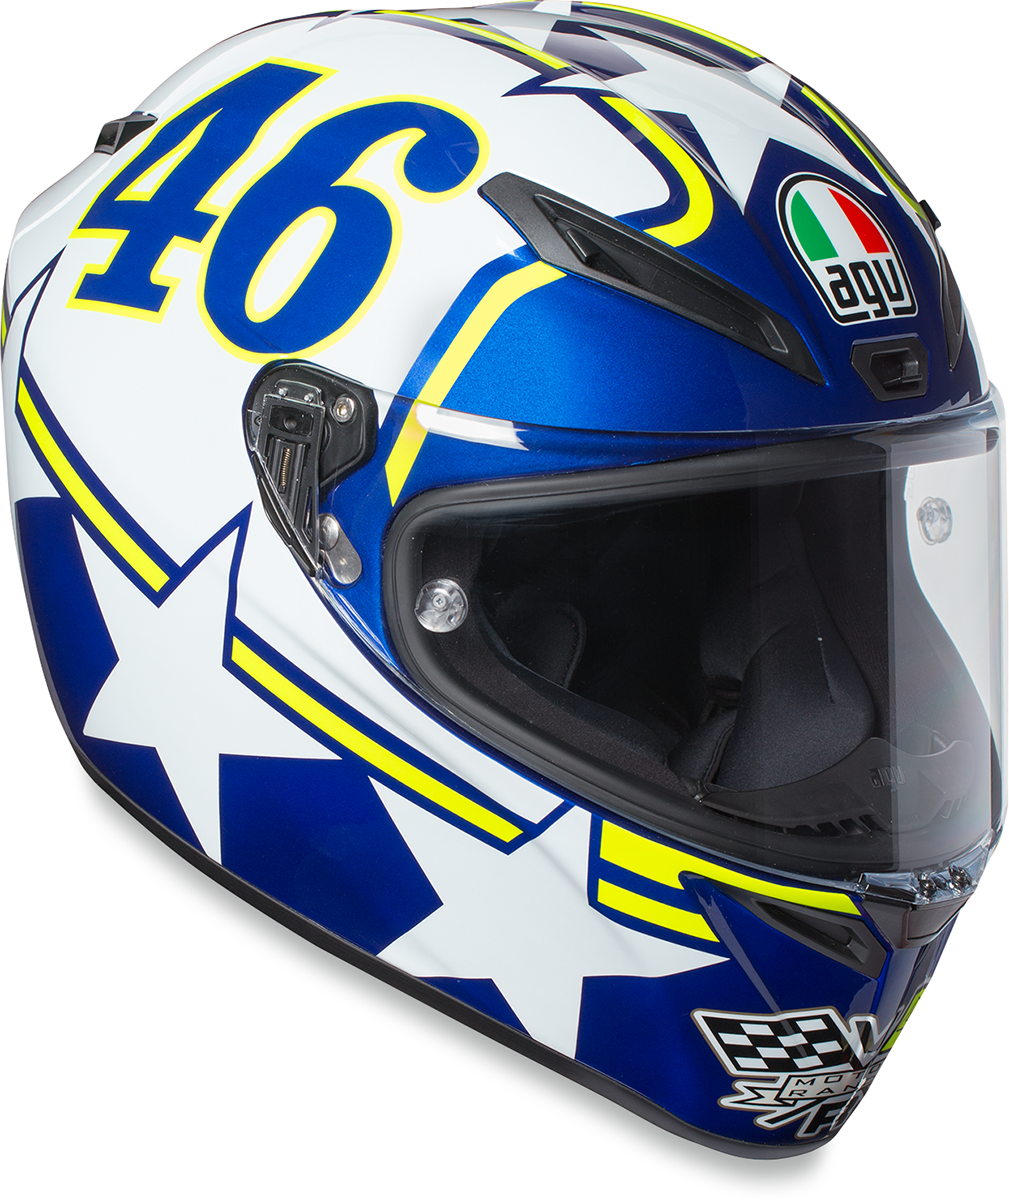 AGV Unisex Ranch Veloce S Full Face Motorcycle Riding Street Racing Helmet